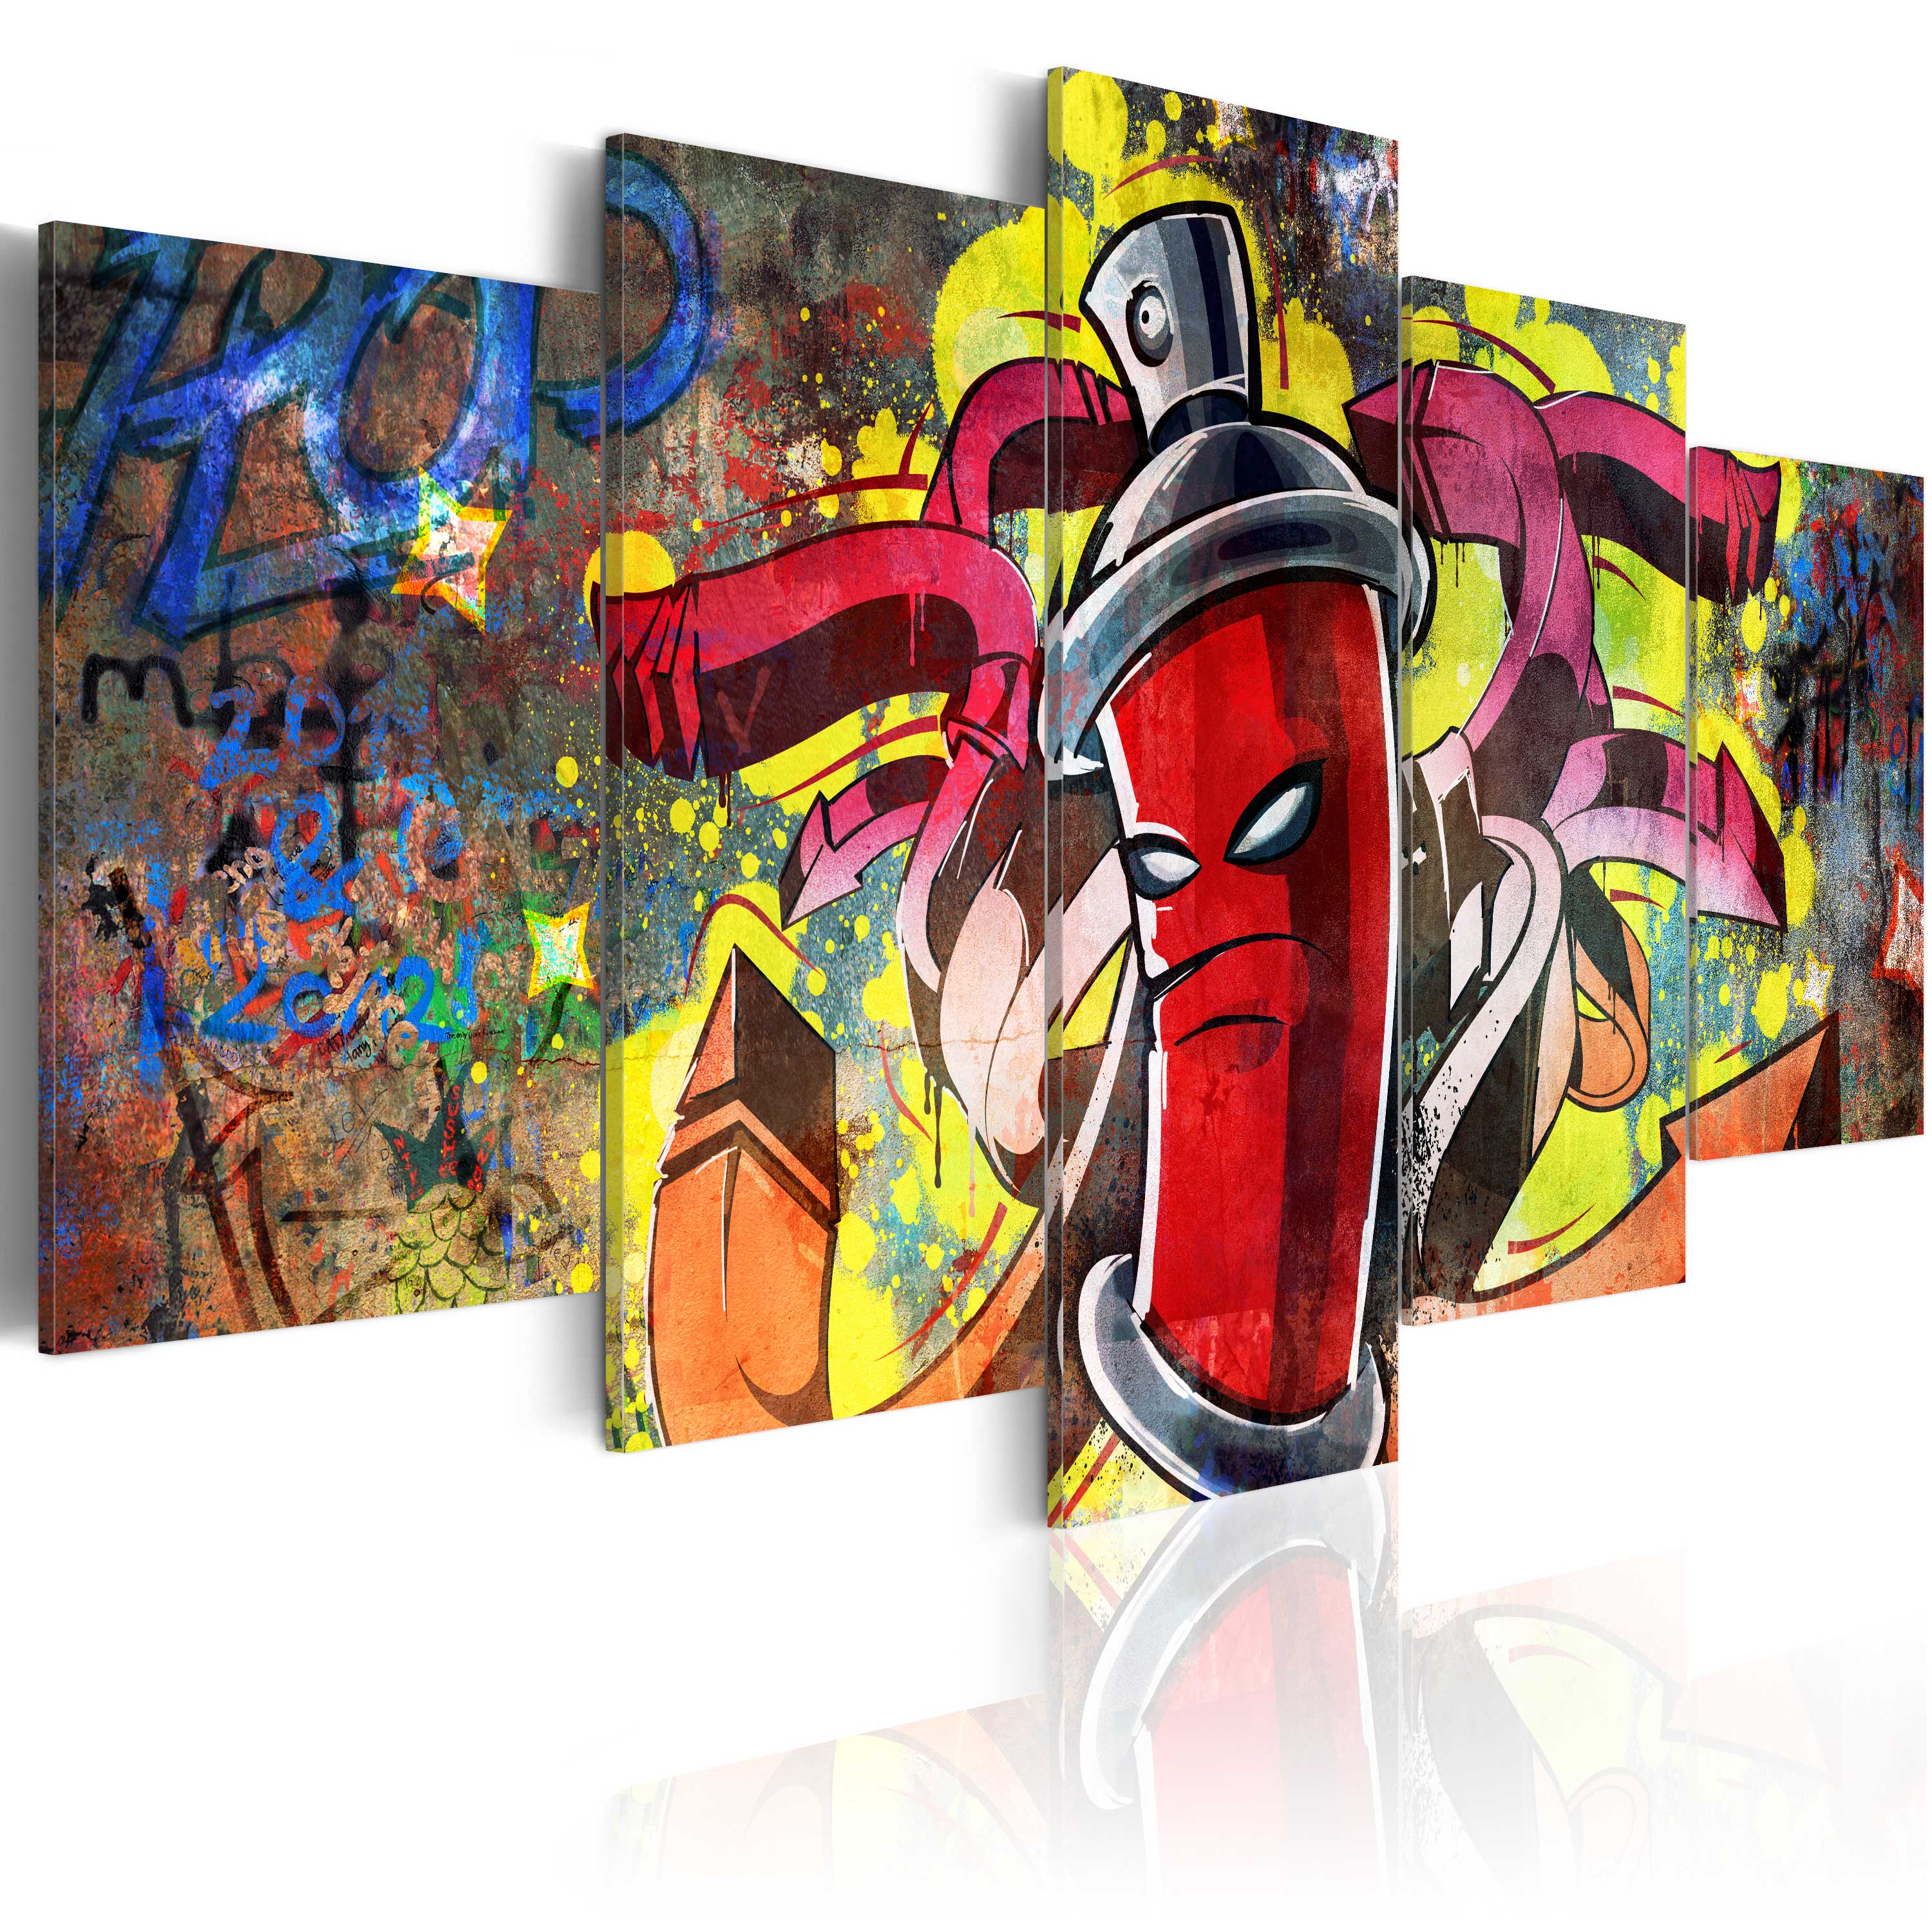 leinwand bilder xxl kunstdruck wandbild graffiti mural. Black Bedroom Furniture Sets. Home Design Ideas